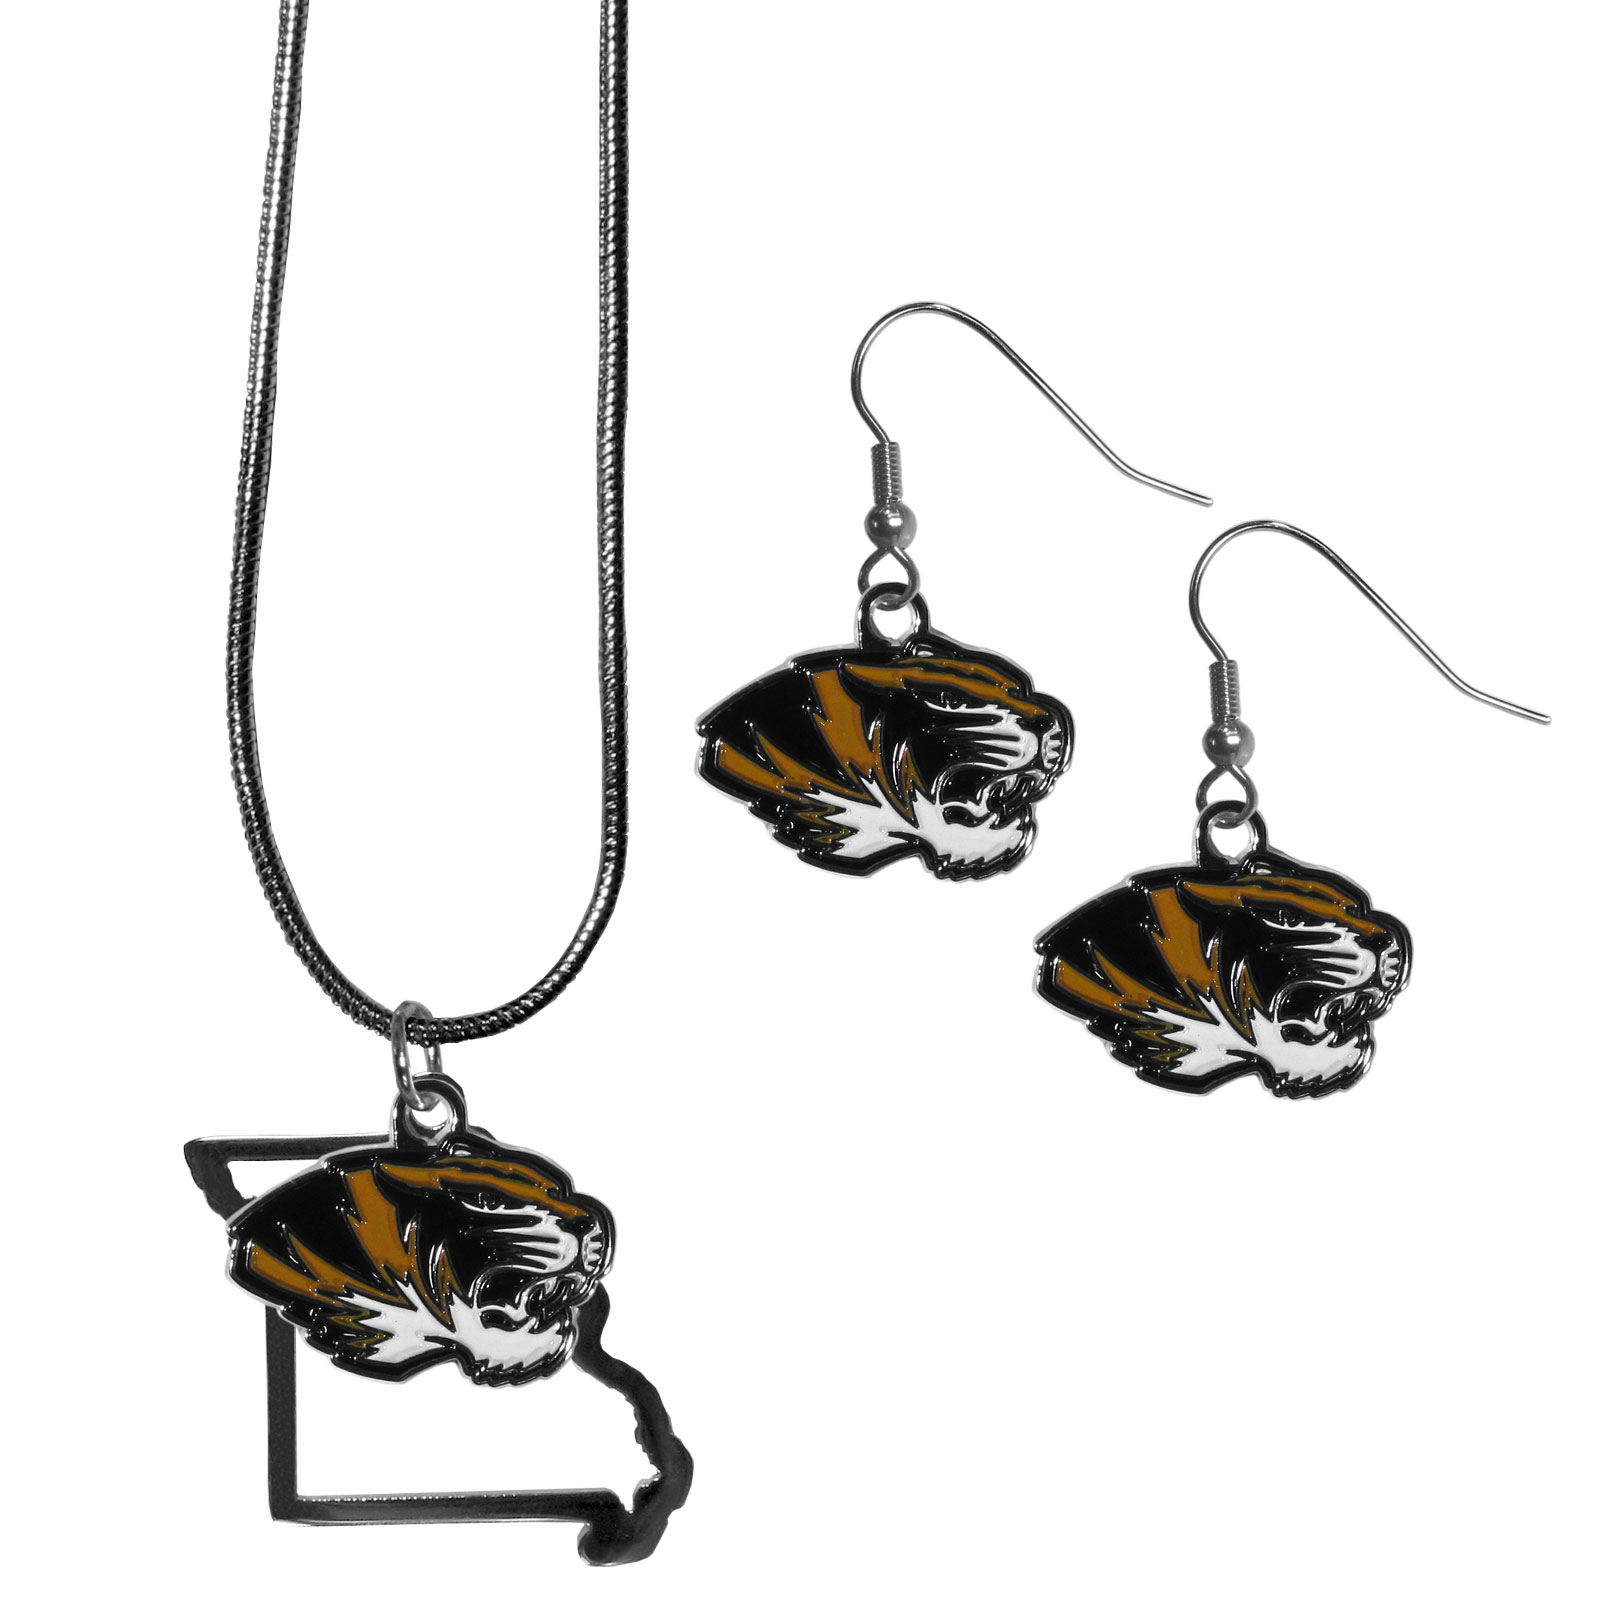 Missouri Tigers Dangle Earrings and State Necklace Set - Get in on the trend! State themes are a trend that just keeps getting more popular and this jewelry set takes the state style and give it a sporty twist with a Missouri Tigers necklace that features an Arizona state outline charm paired with a beautiful team charm and matching team charm dangle earrings. The earrings feature hypoallergenic fishhook posts that are nickel free.